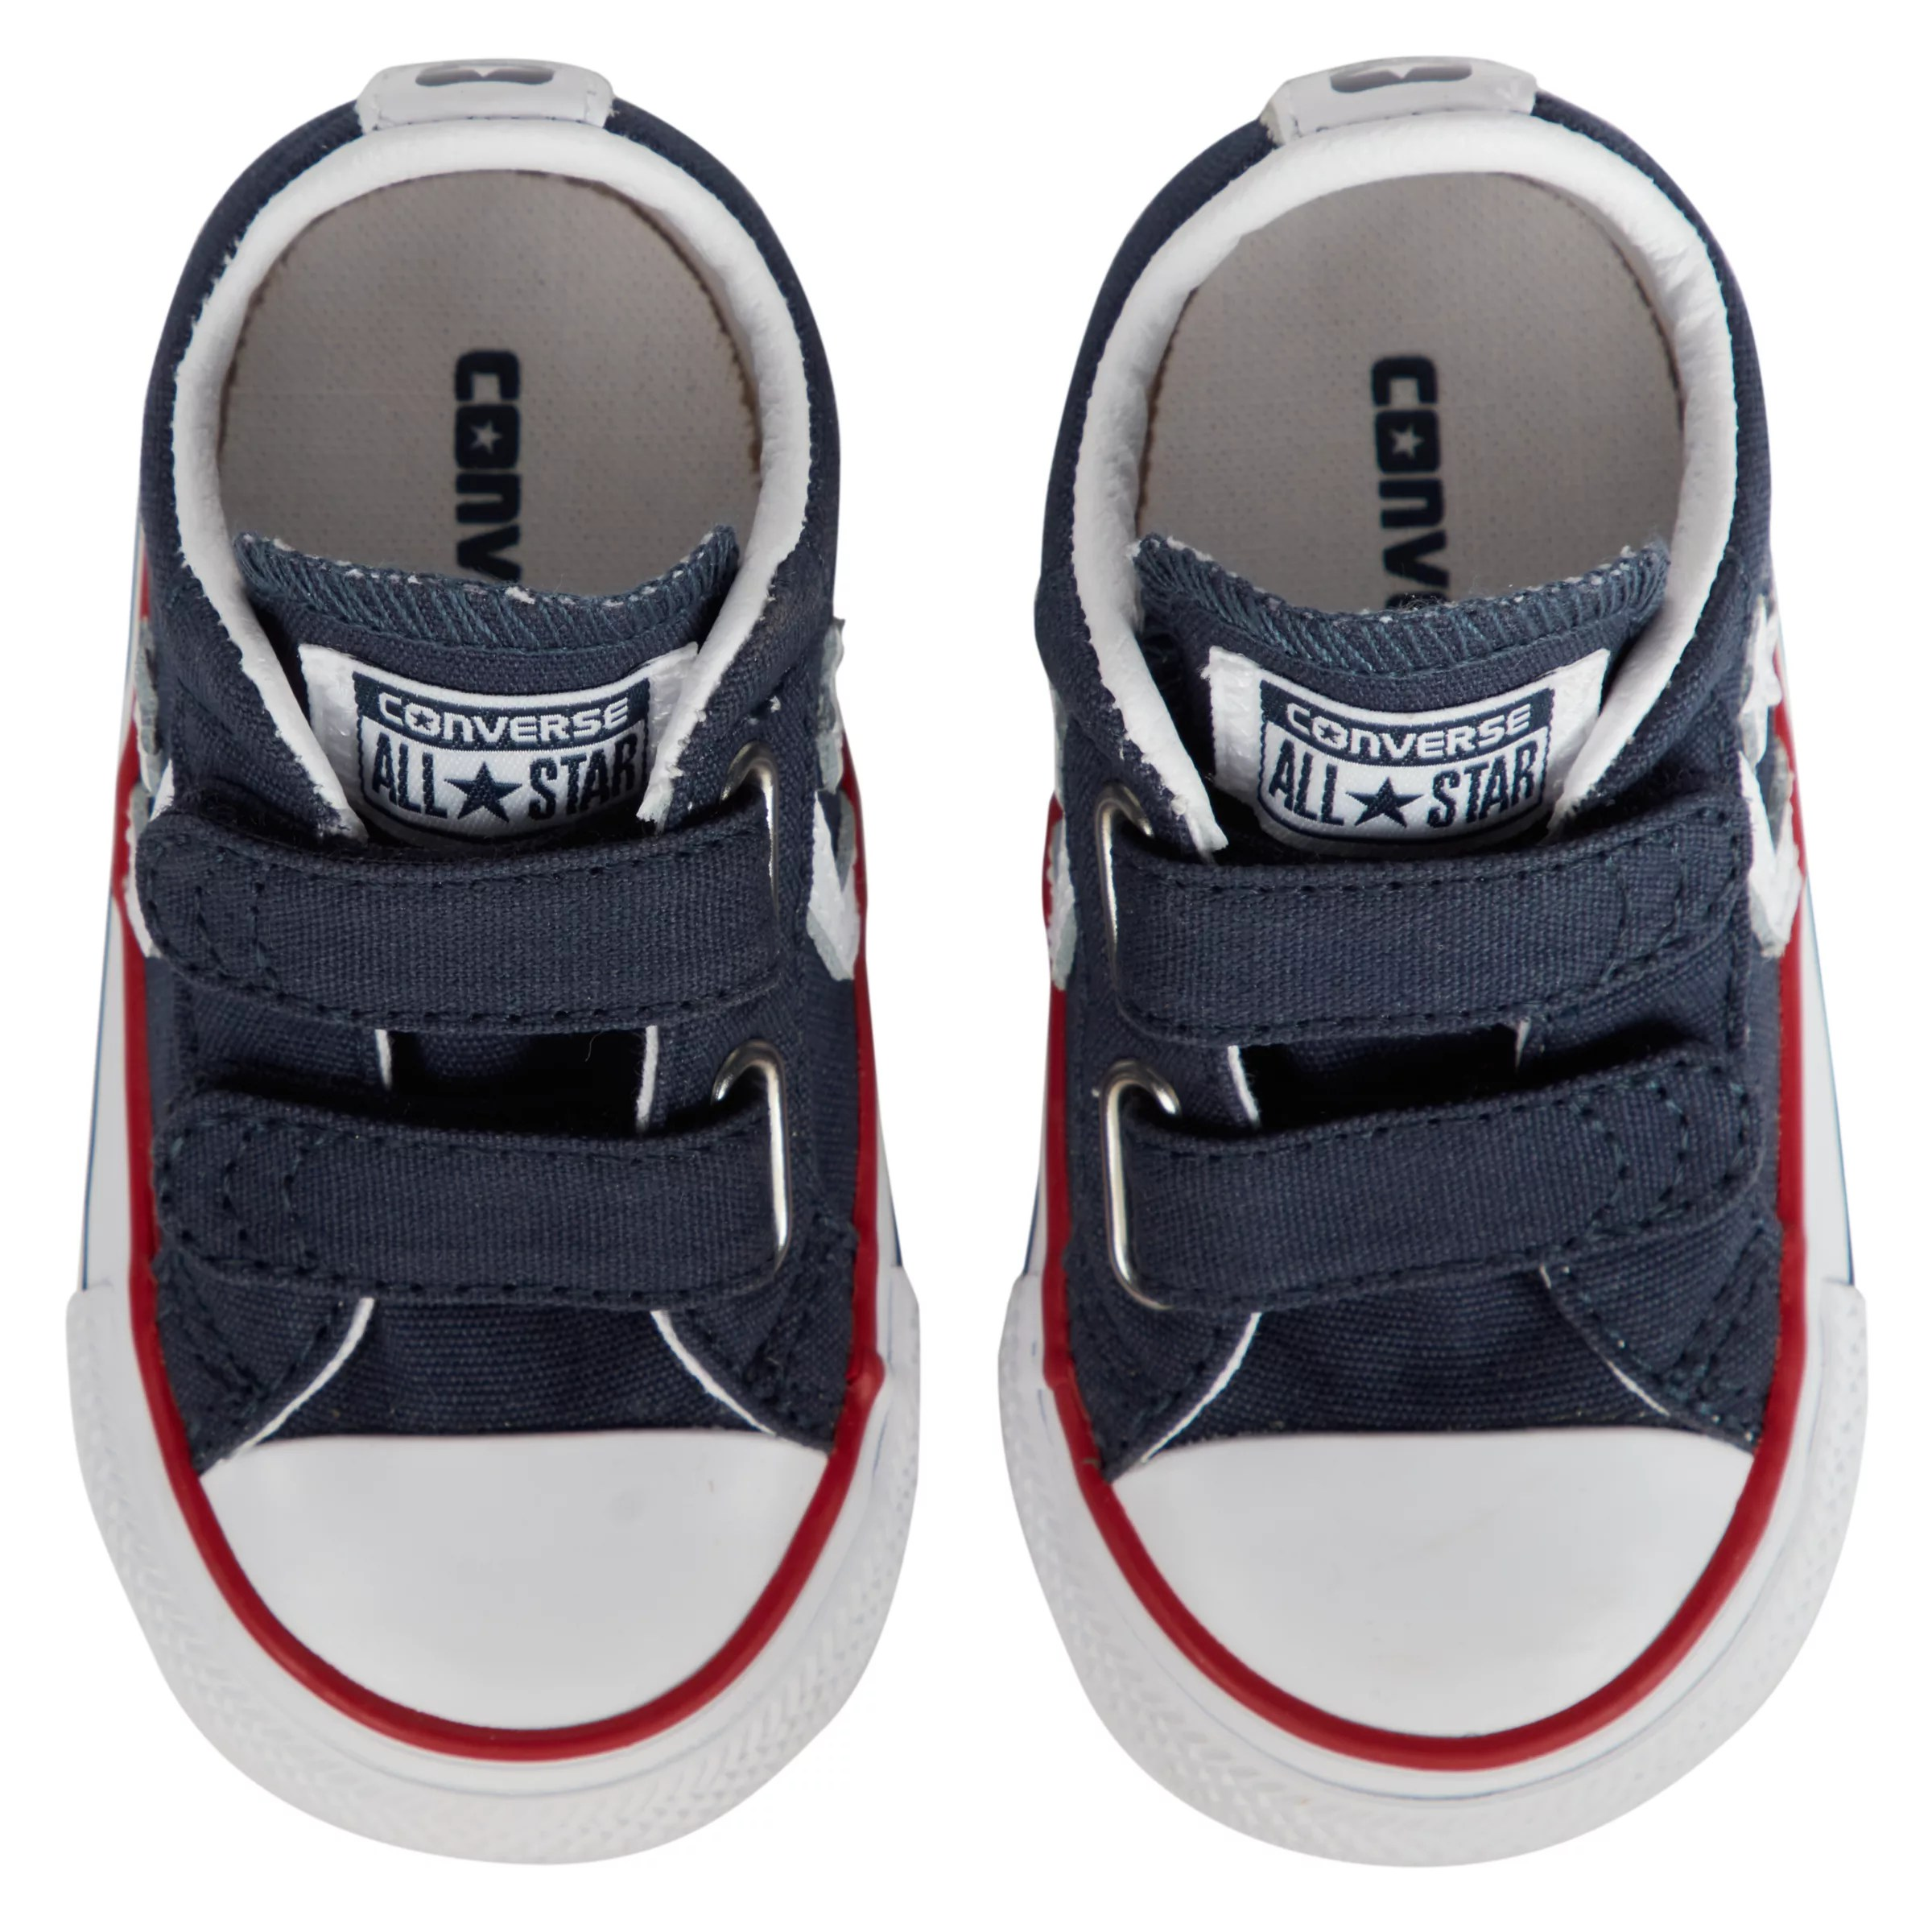 Baby White Converse Pram Shoes Converse Children S Star Player 2v Shoes Navy White At John